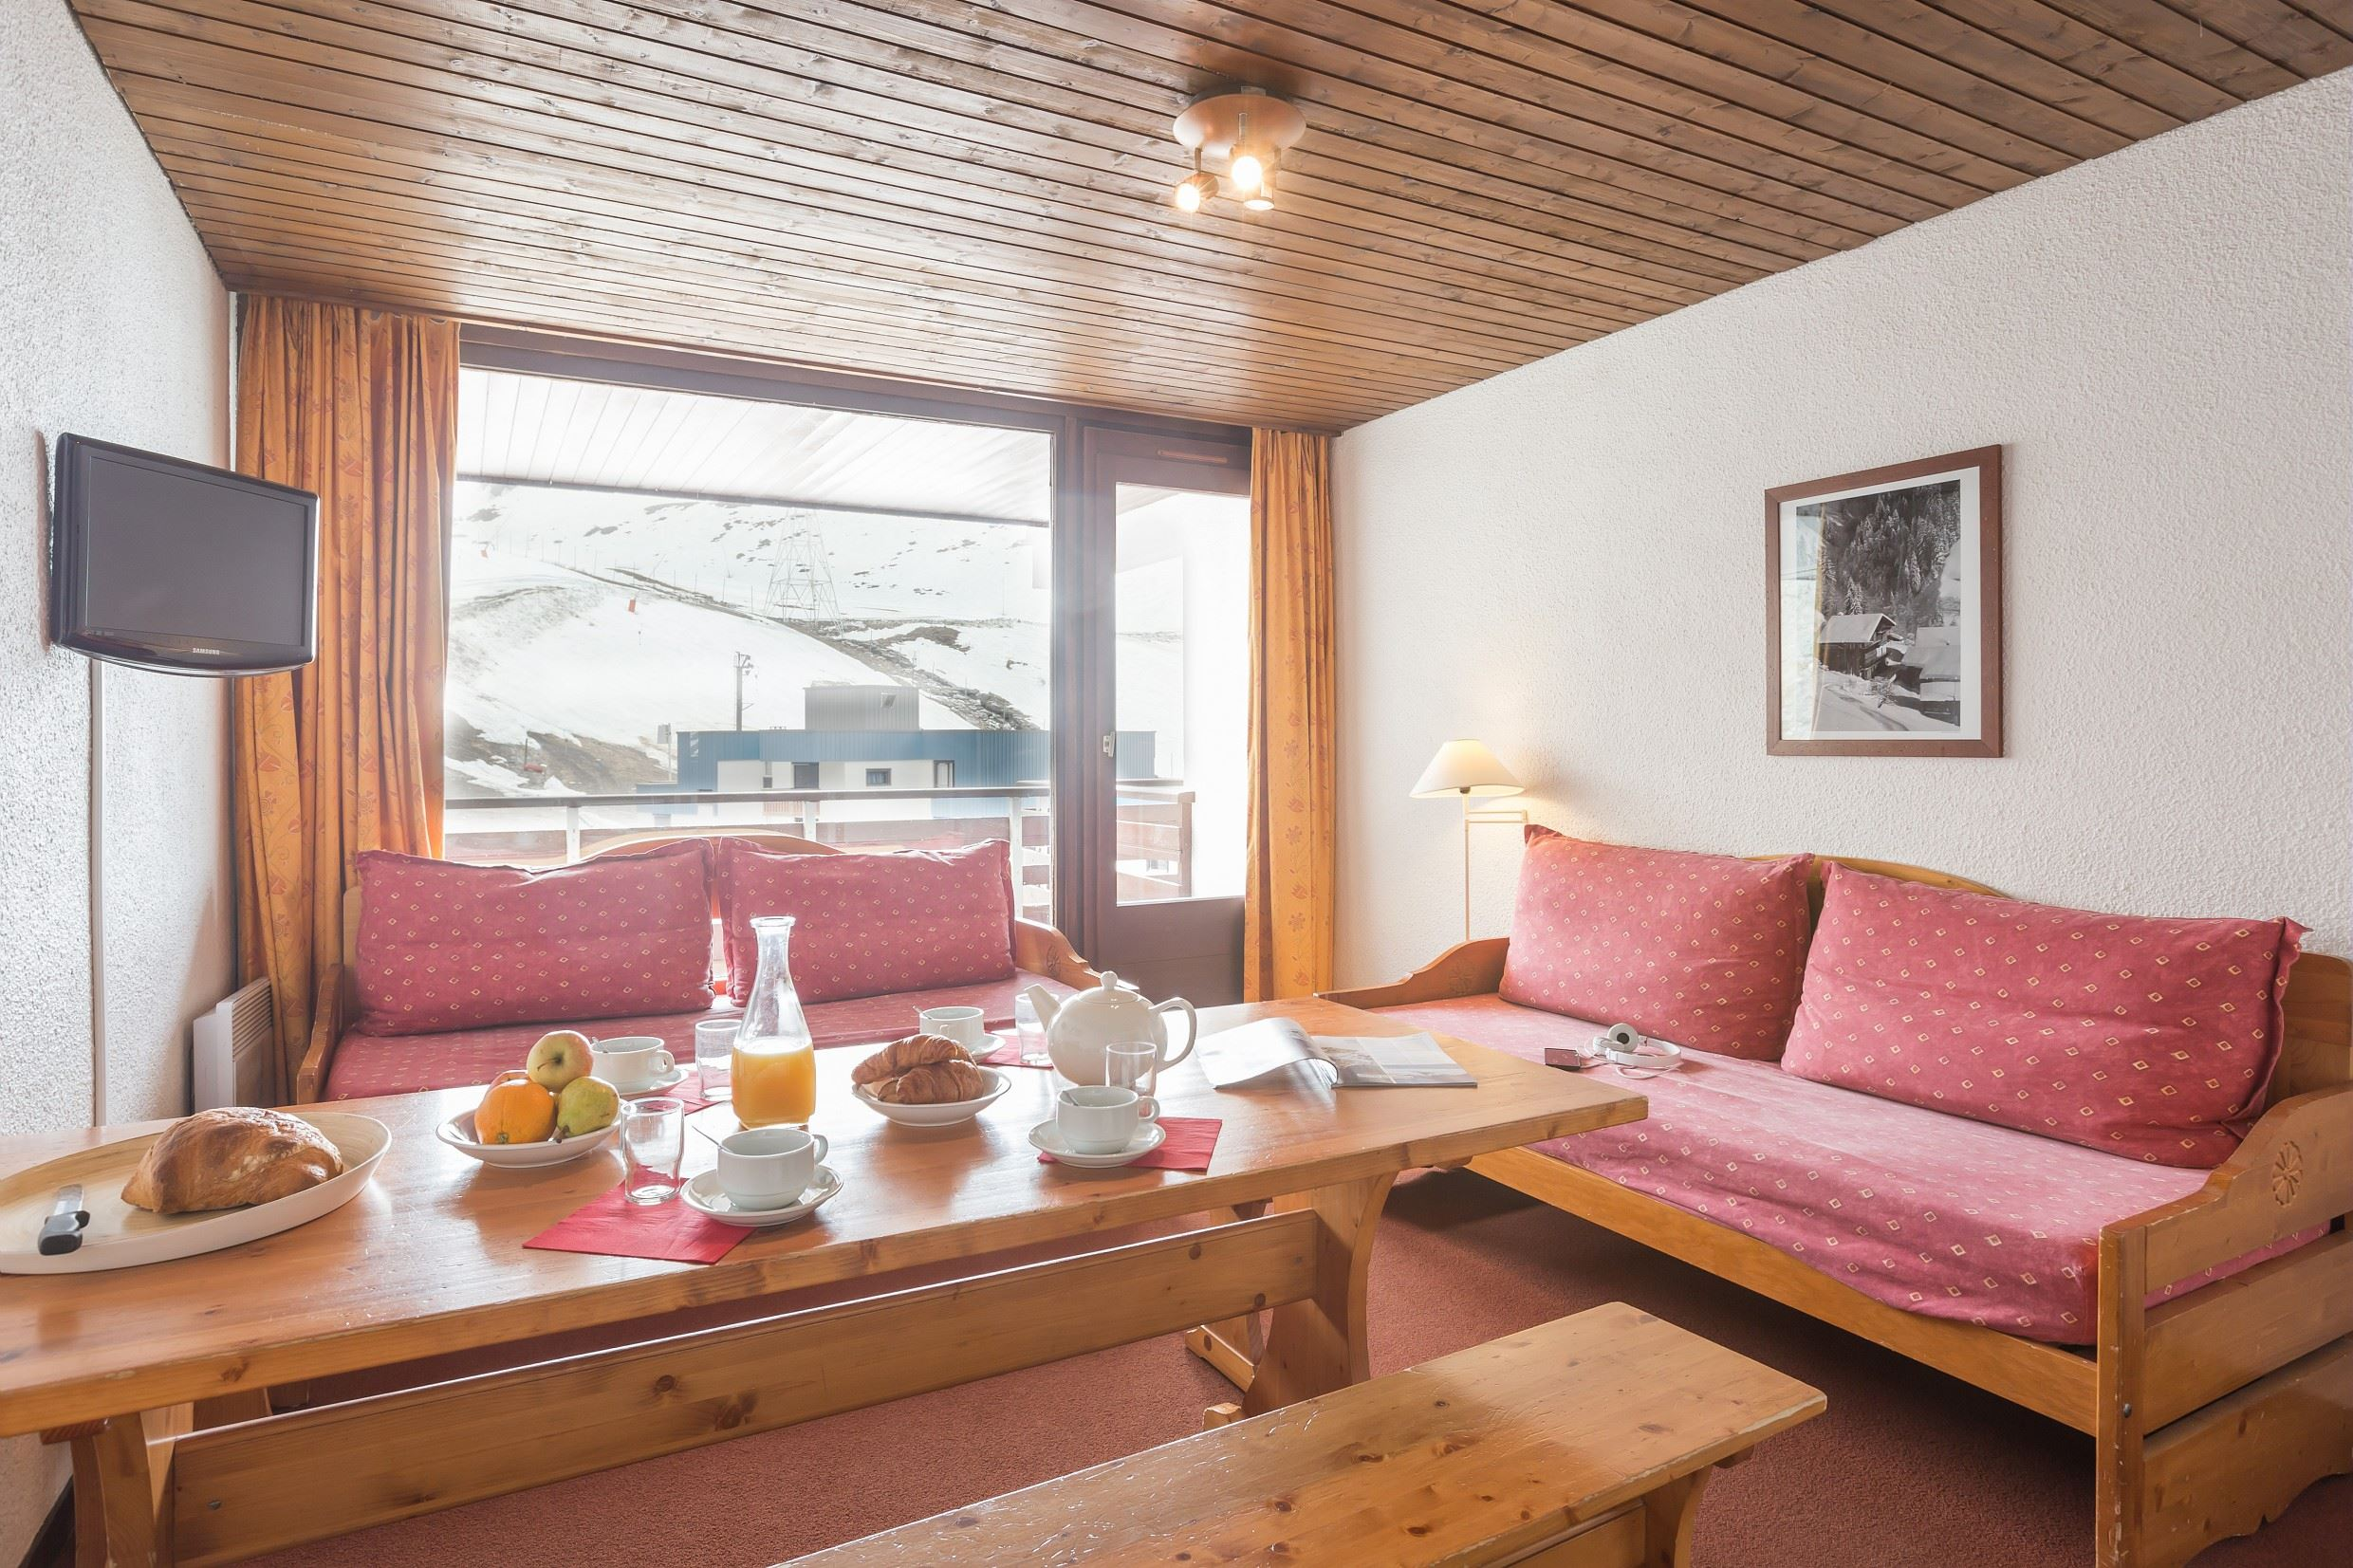 Residence Schuss - Studio cabin 6 persons with balcony south facing and view on the slopes